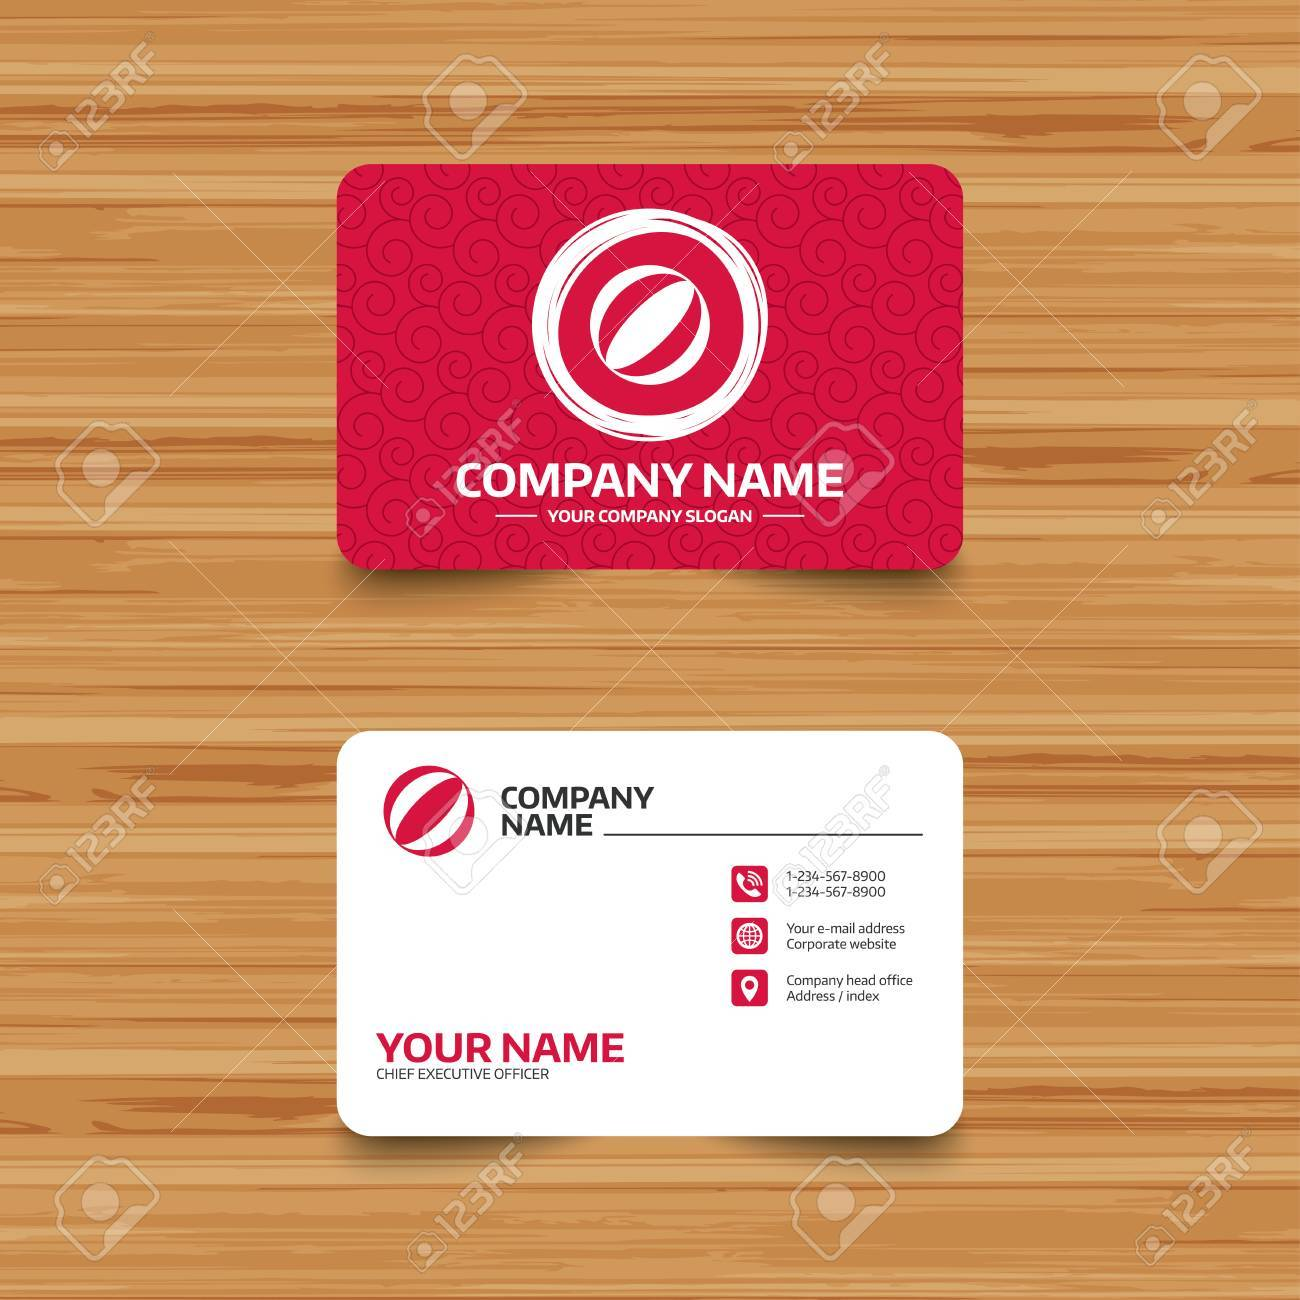 business card template with texture beach ball sign icon water